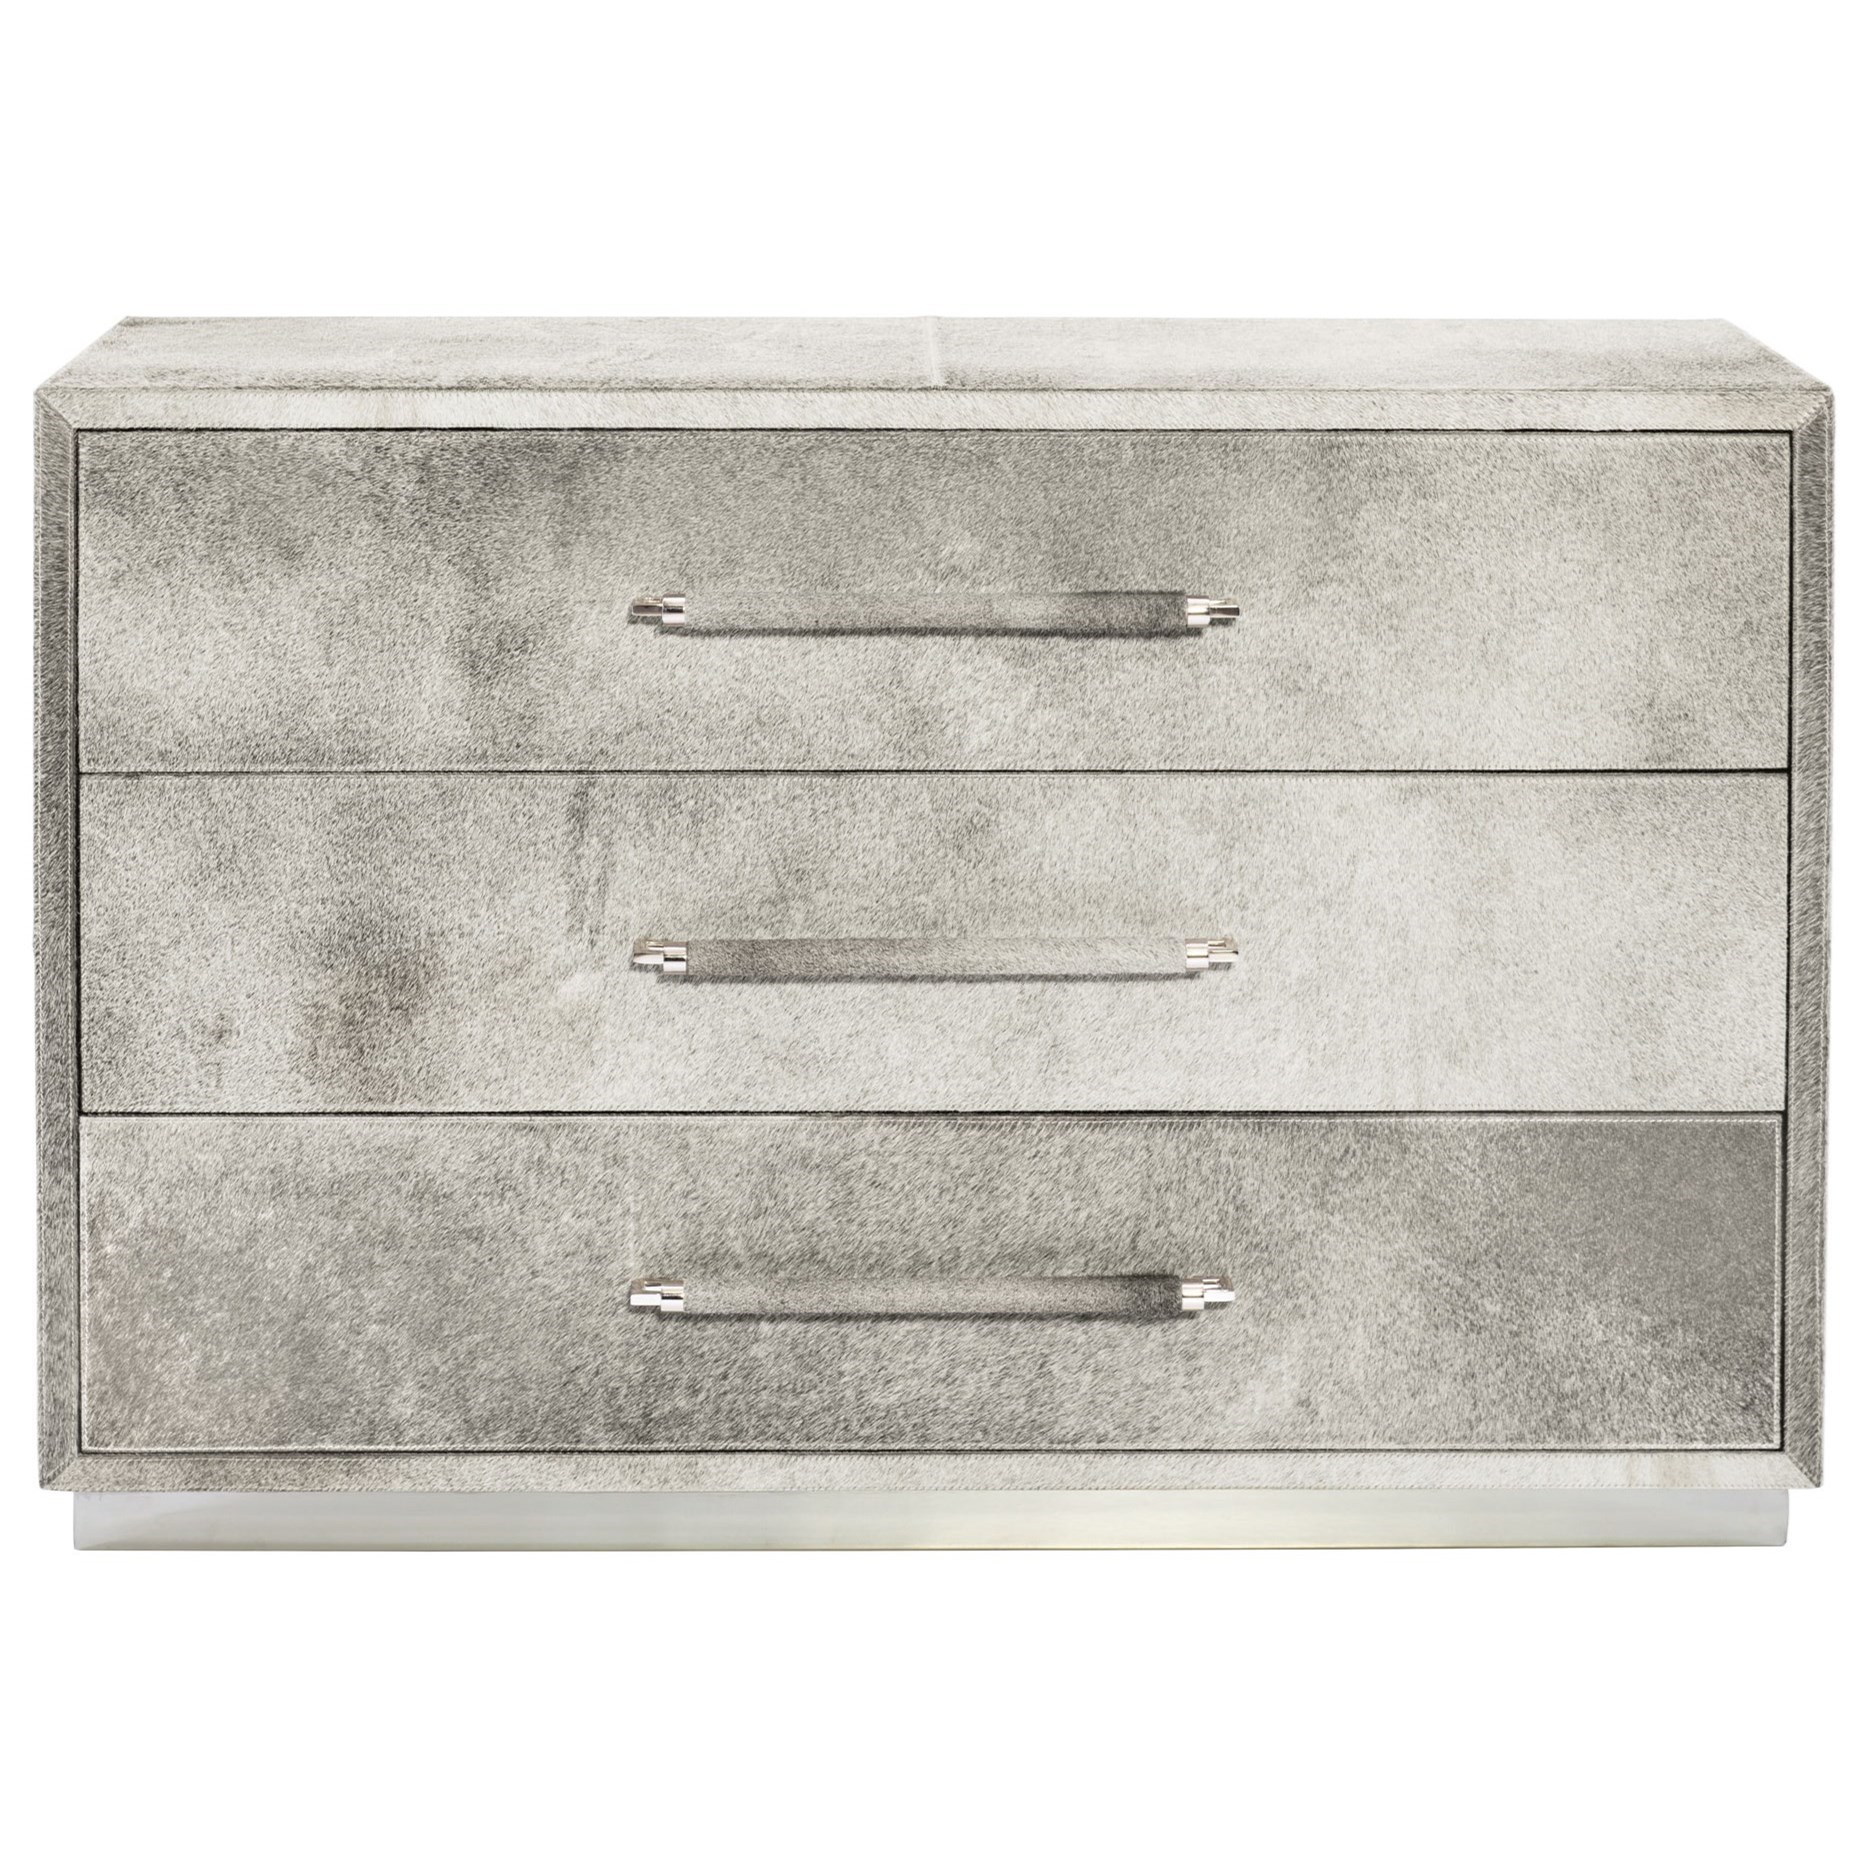 Interiors - Accents Parkin Drawer Chest by Bernhardt at Baer's Furniture